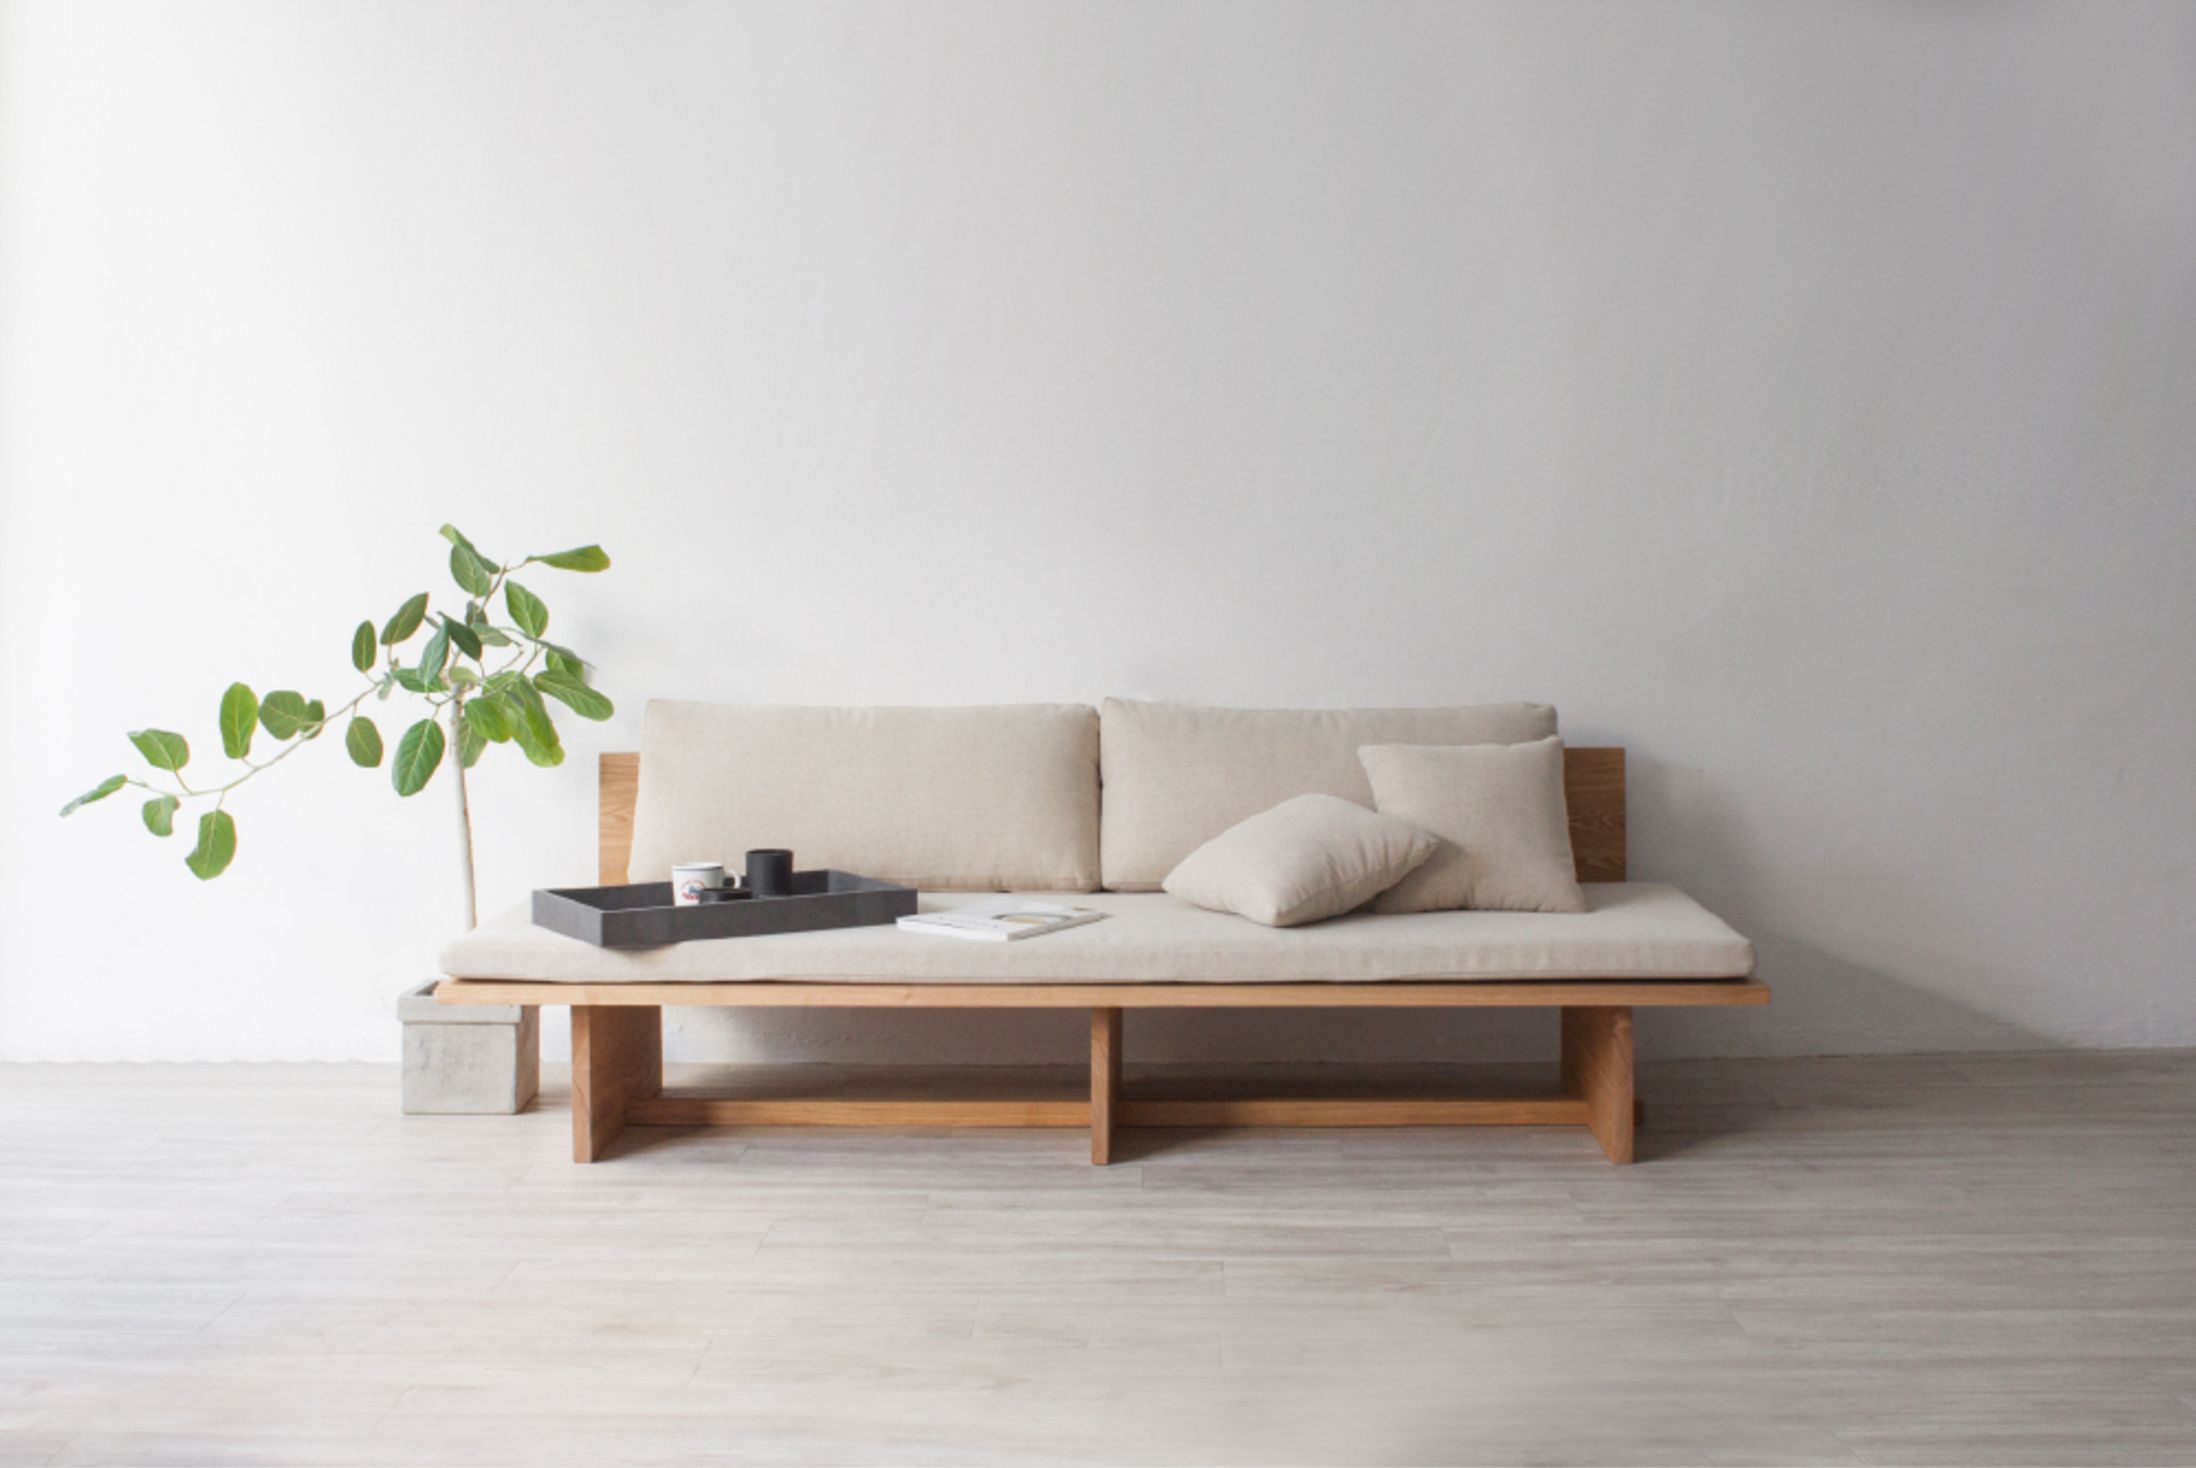 Muebles Bop Concept - Blank Sofa South Korea Minimal And Designers[mjhdah]https://s-media-cache-ak0.pinimg.com/originals/b5/51/12/b55112db1c51a1de750a2826efaf62fe.jpg